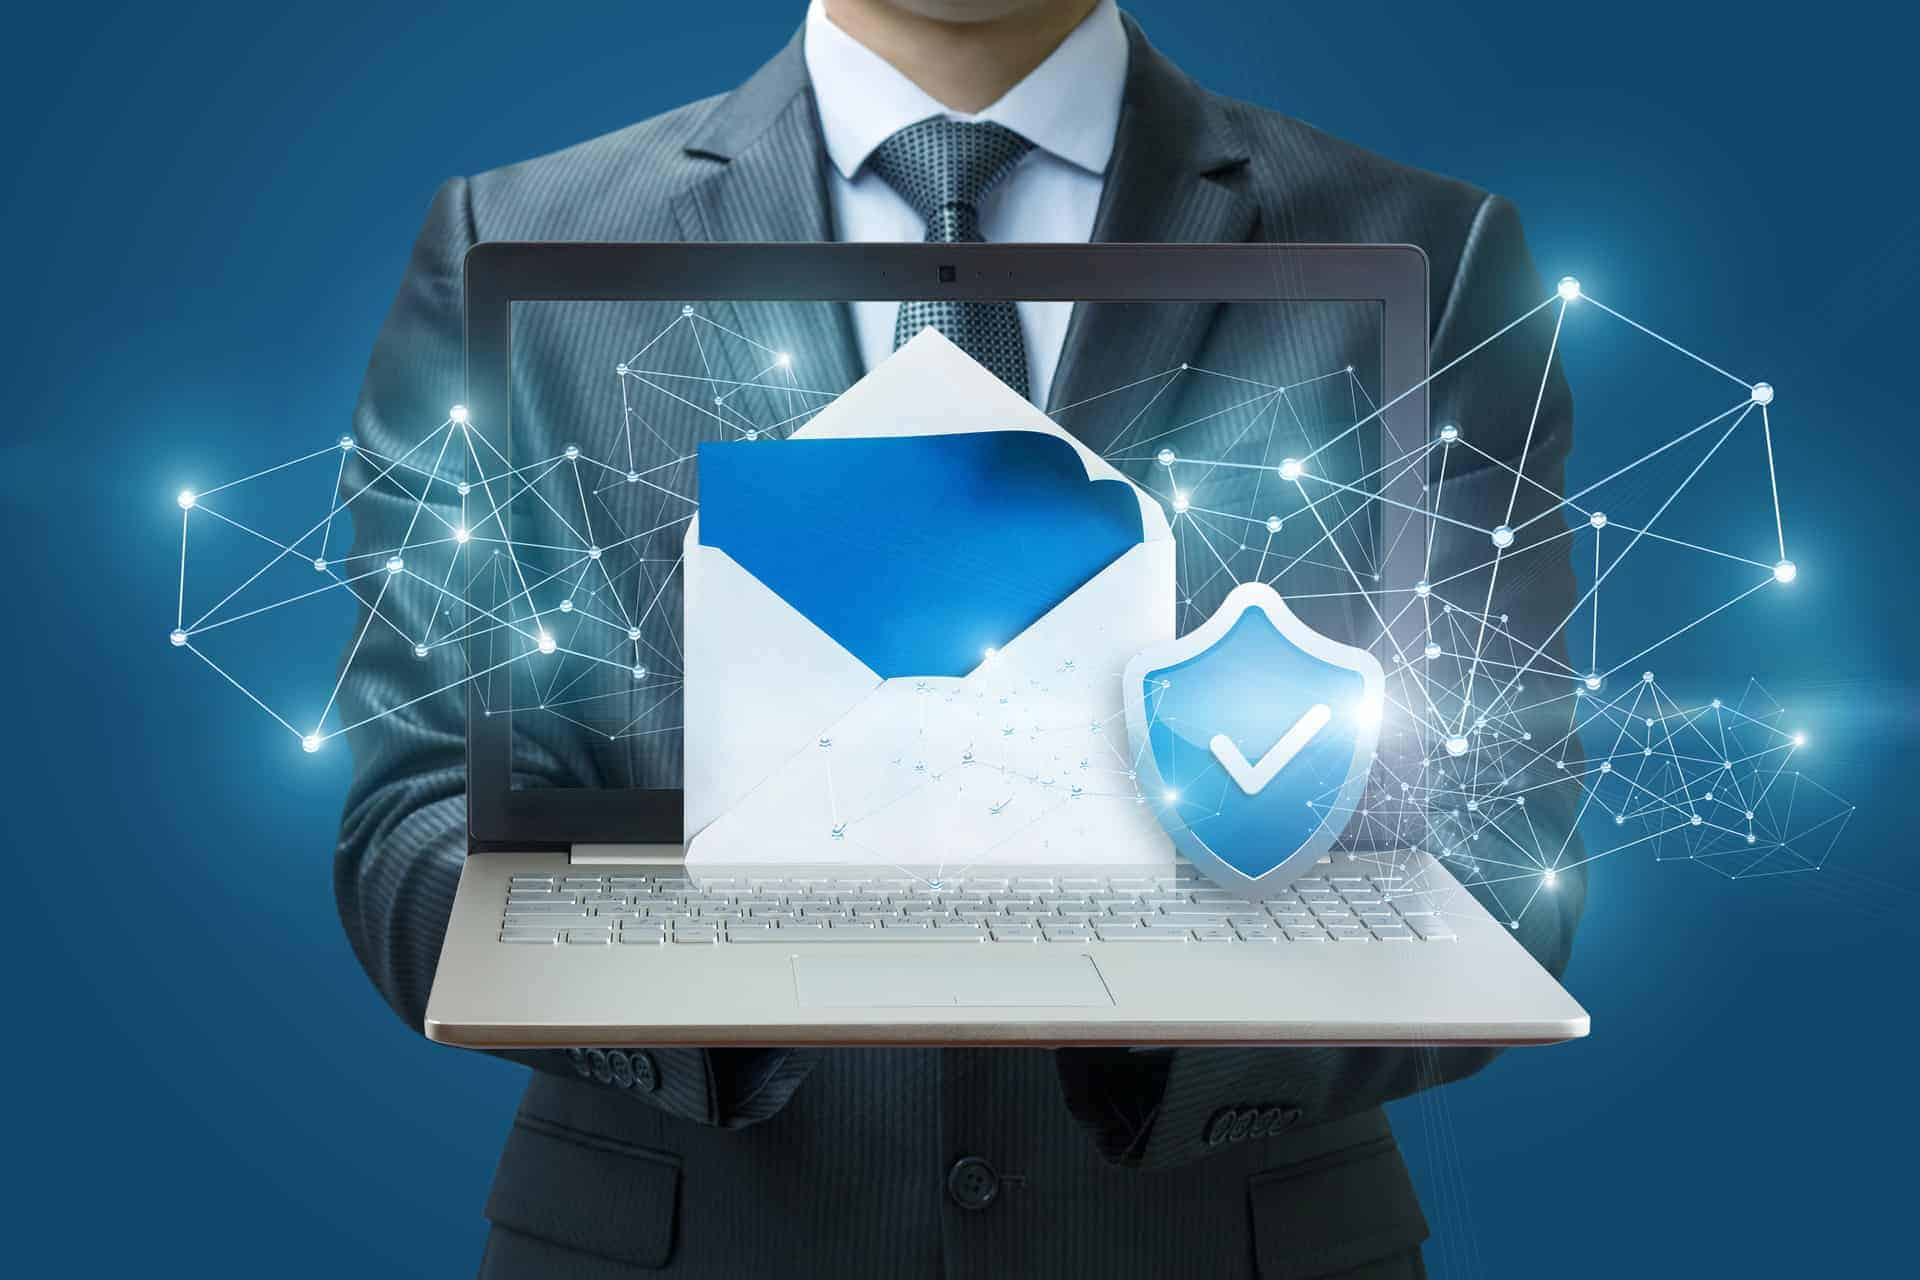 SONEMA presents a new email hosting solution